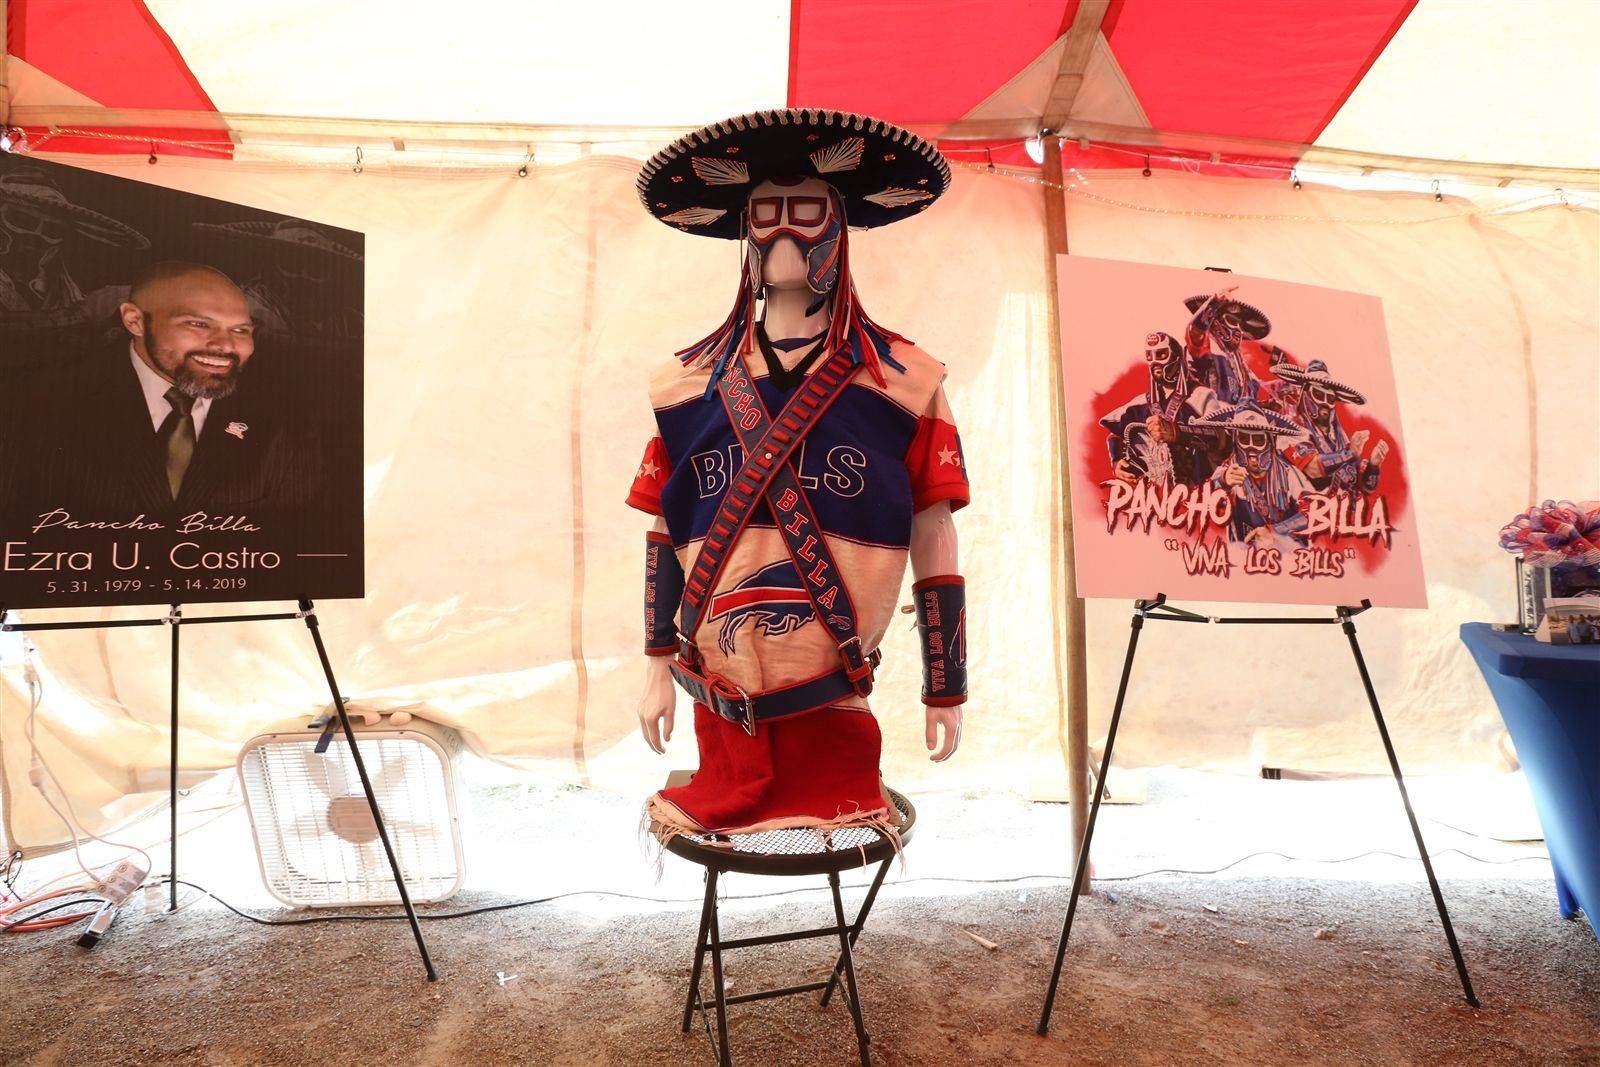 A memorial for Ezra Castro (Pancho Billa) was set up for the public at the Hammer lot at New Era Field in Orchard Park on Saturday, Sept. 21, 2019.